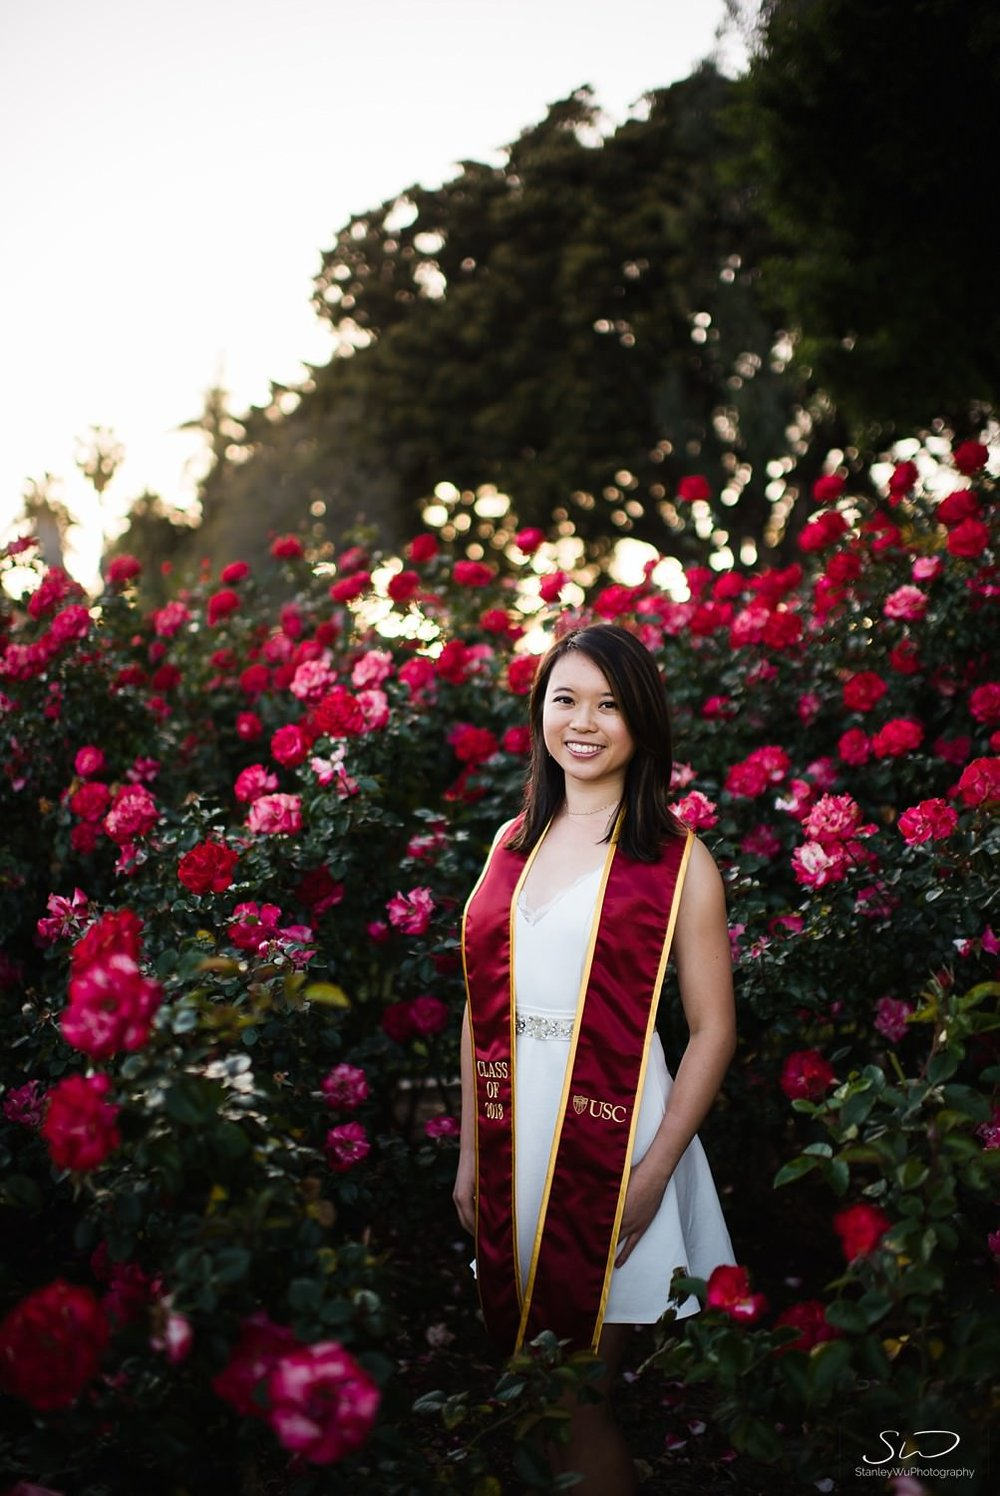 USC senior posing in Rose Garden | Los Angeles Graduation and Senior Portrait Photographer